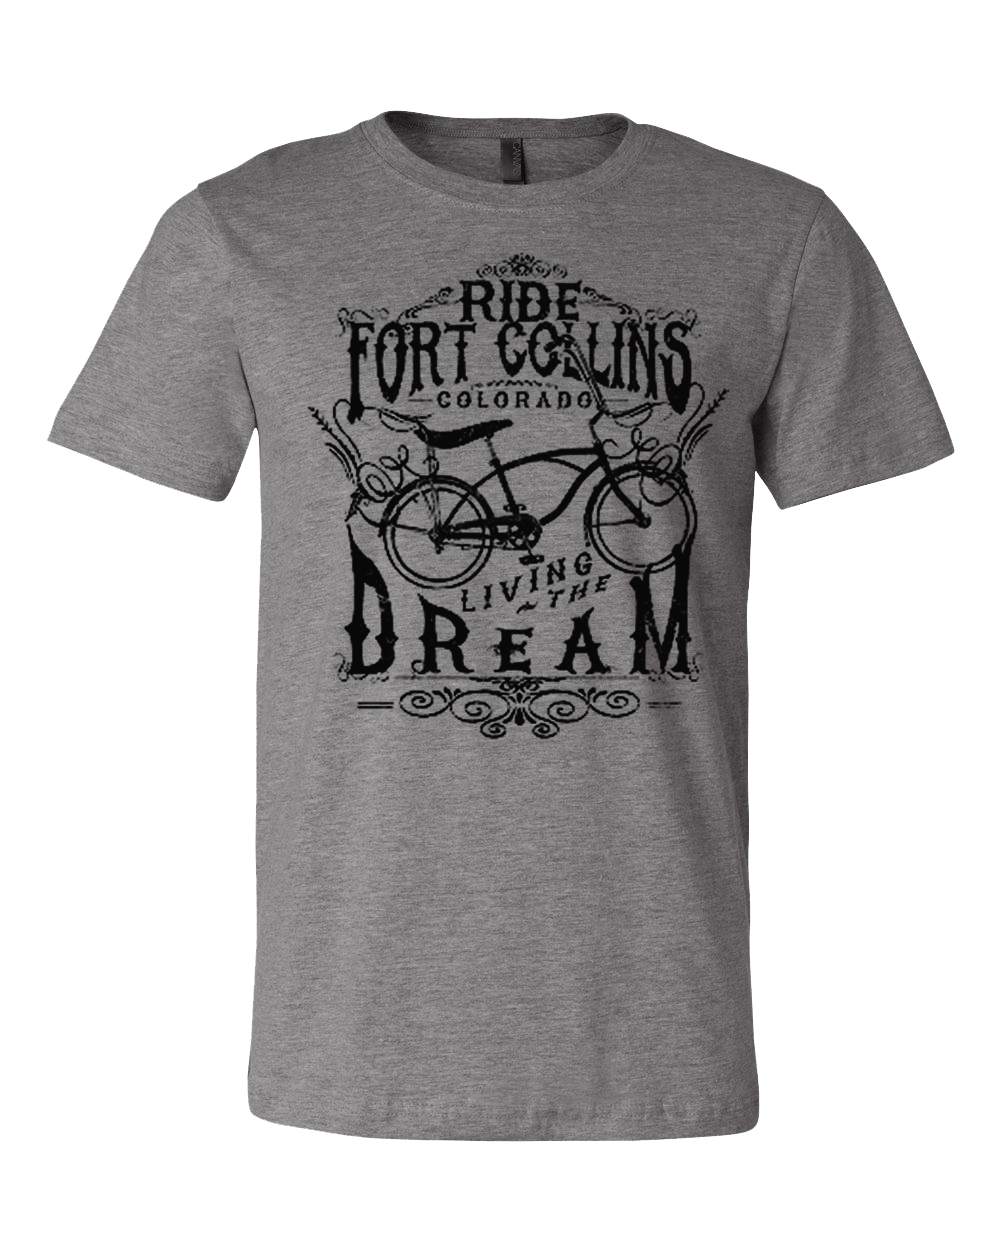 Fort Collins, CO Vintage Bike Shirt